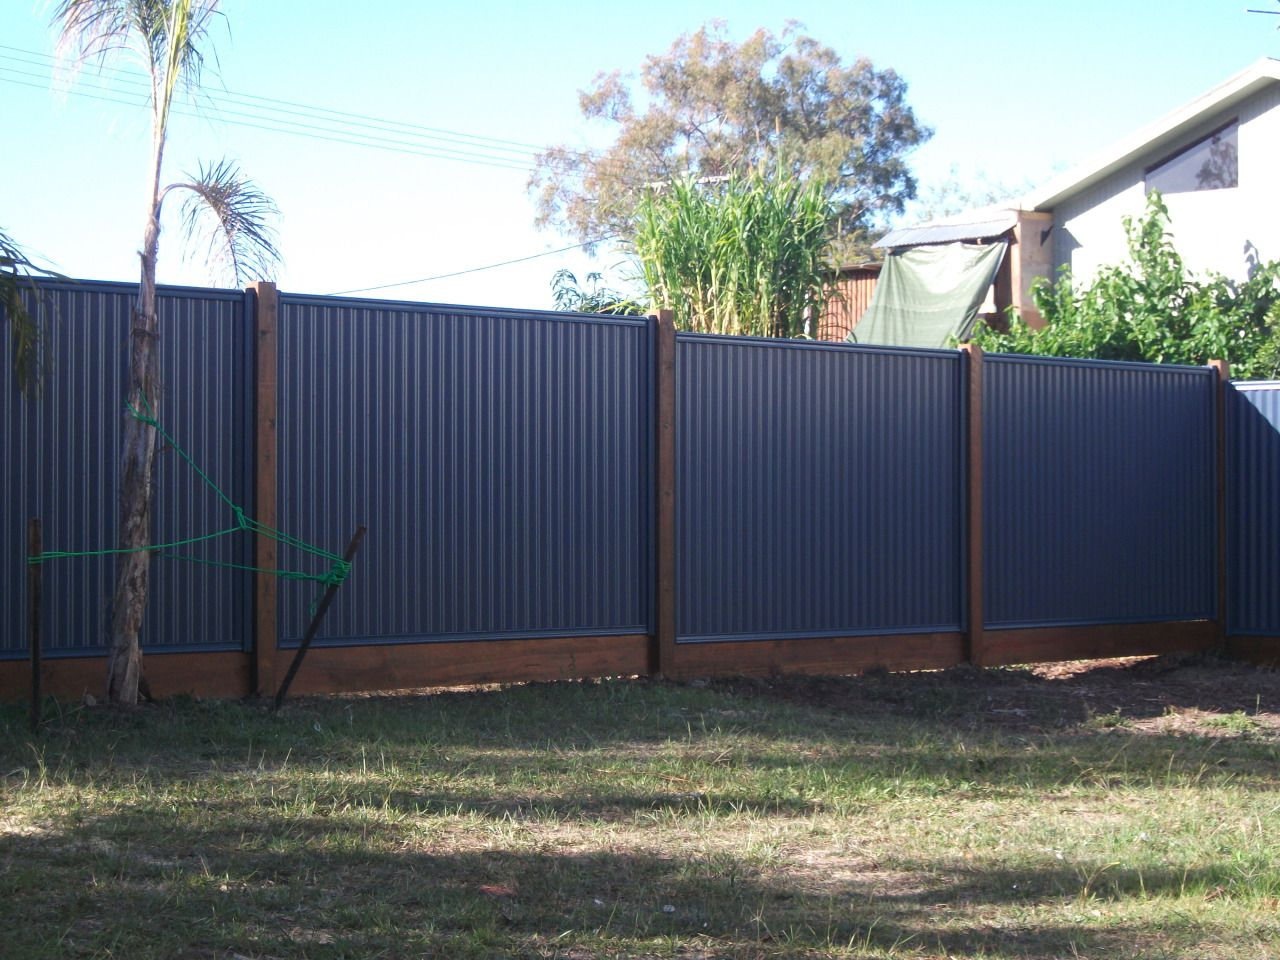 Colorbond Fencing Australia And Timber Post Sleepers Series Timber And Colorbond Looks Great The Natural Tones Of Front Fence Backyard Fences Fence Design